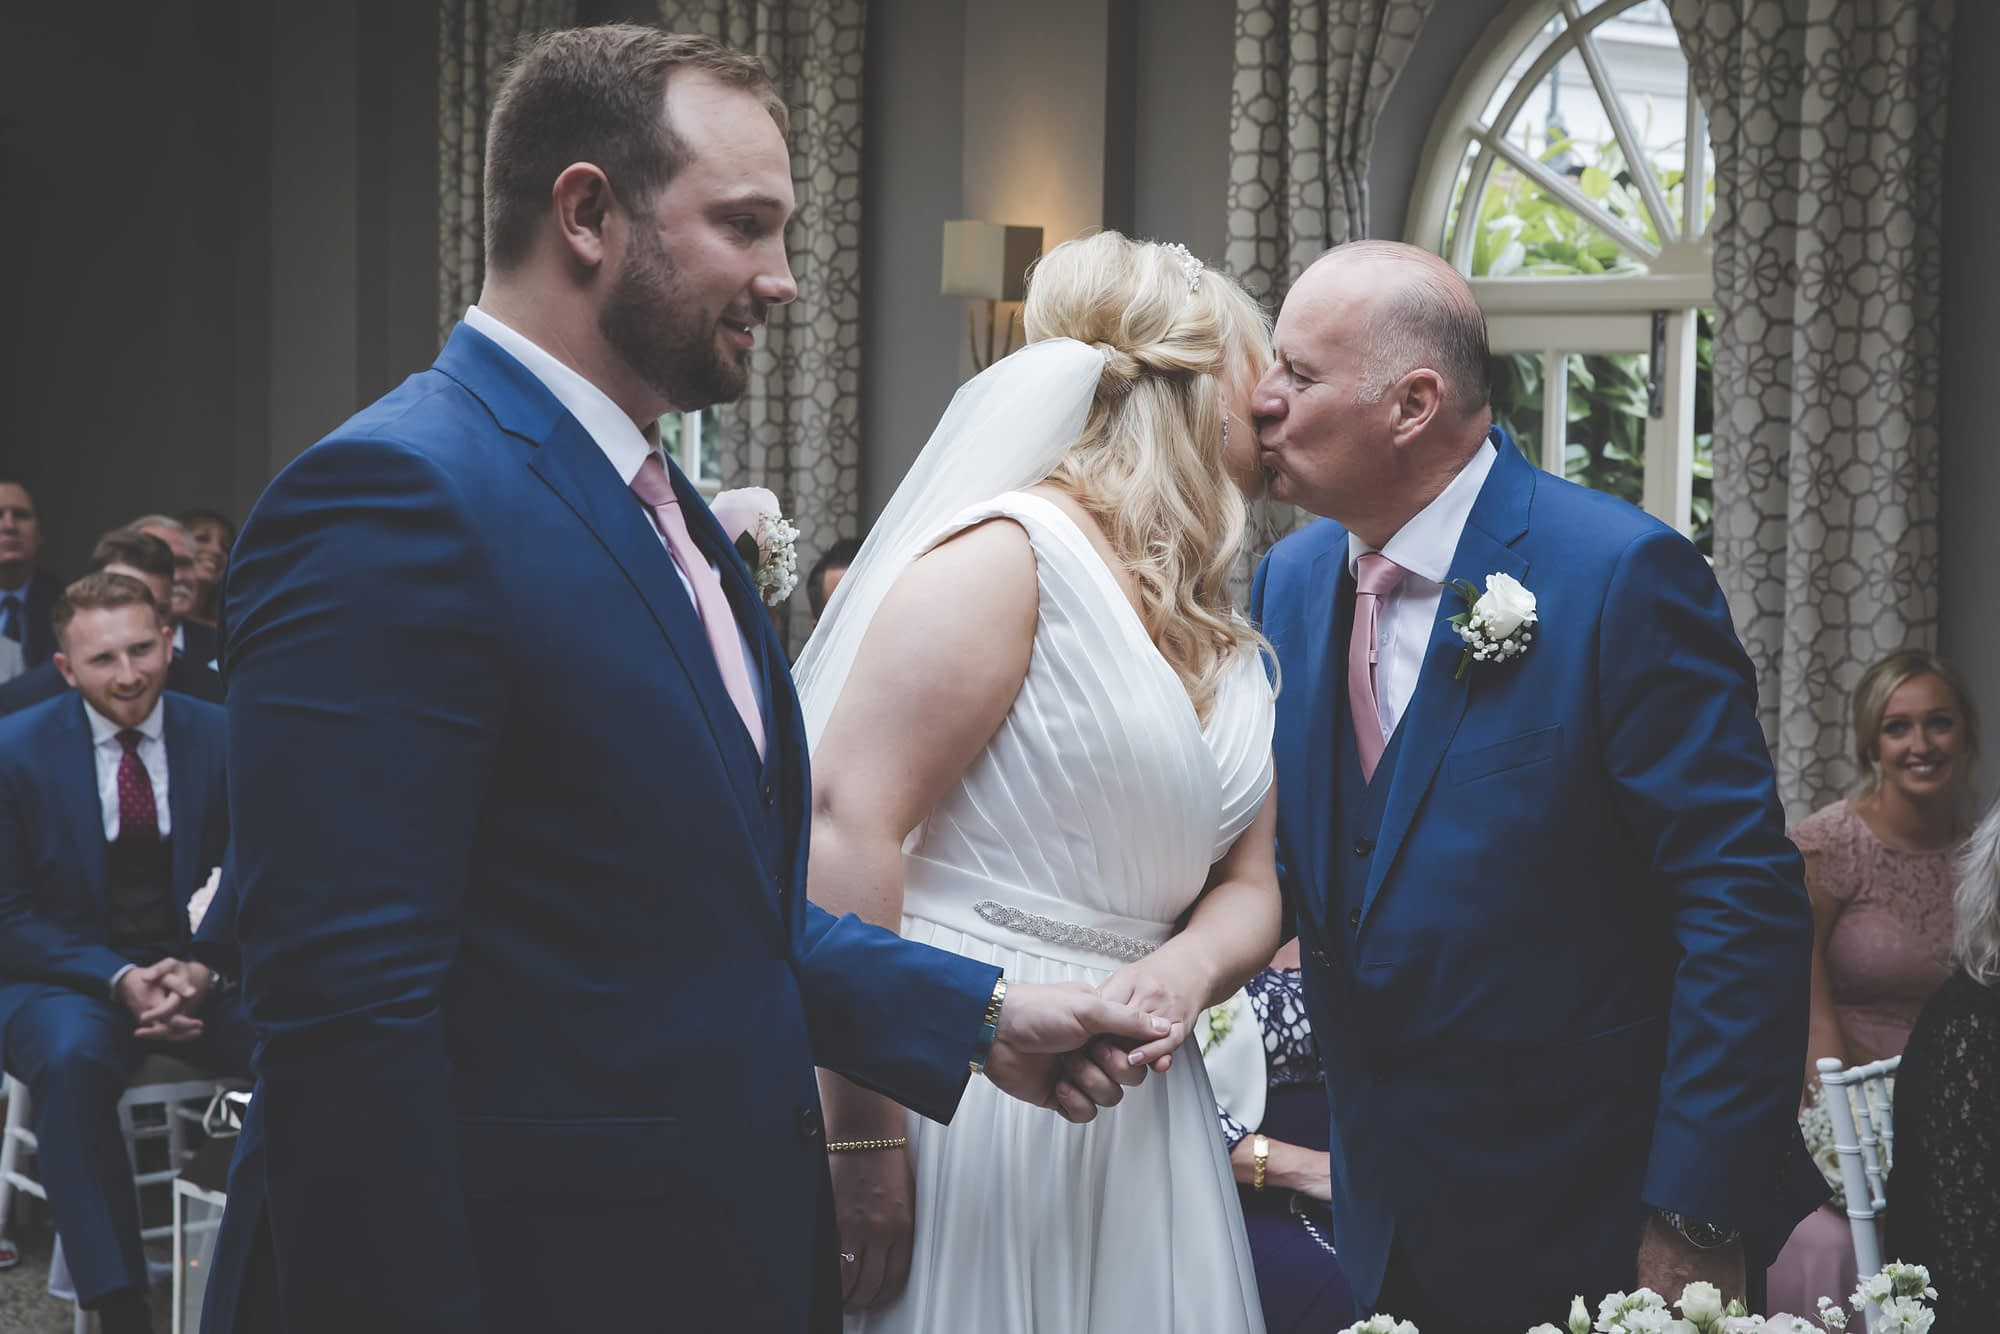 dad gives bride a kiss on the cheek